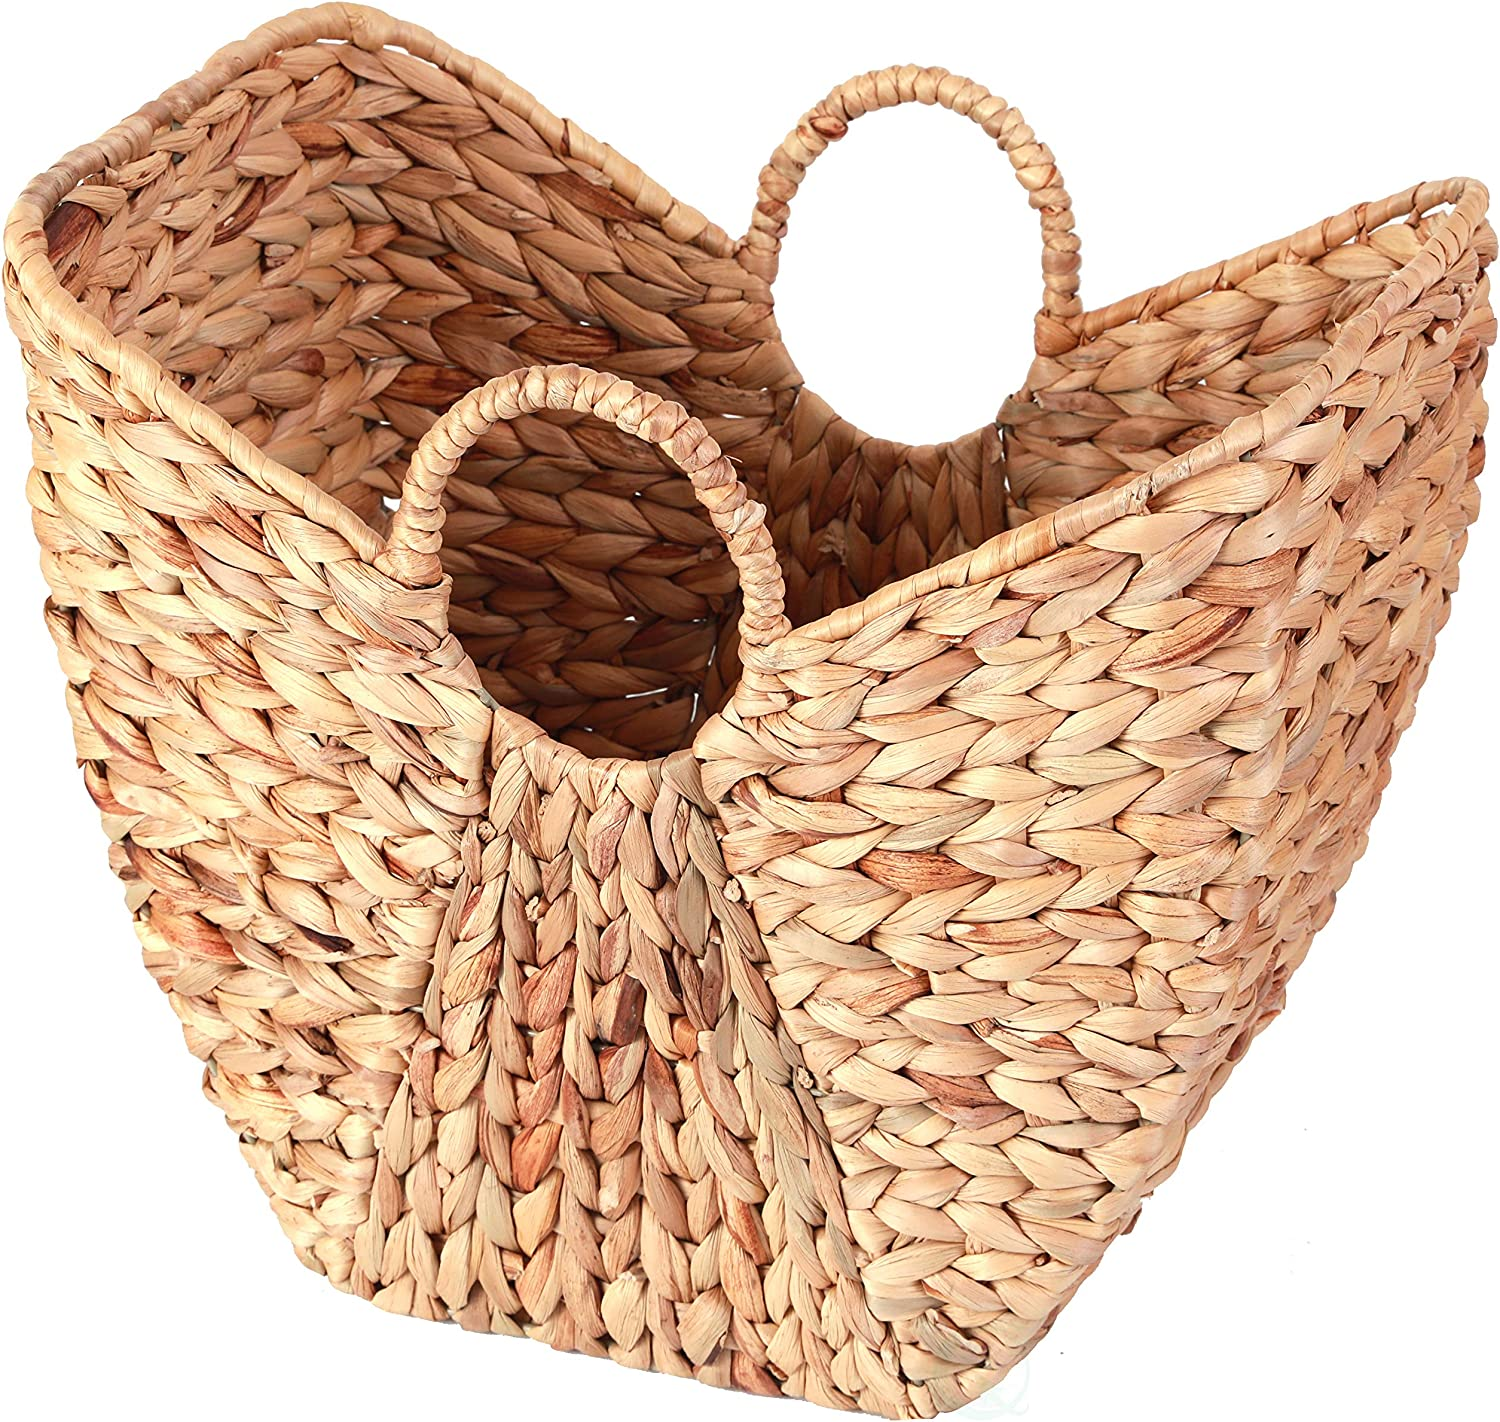 Vintiquewise QI003361.L Large Wicker Laundry Basket with Round Handles